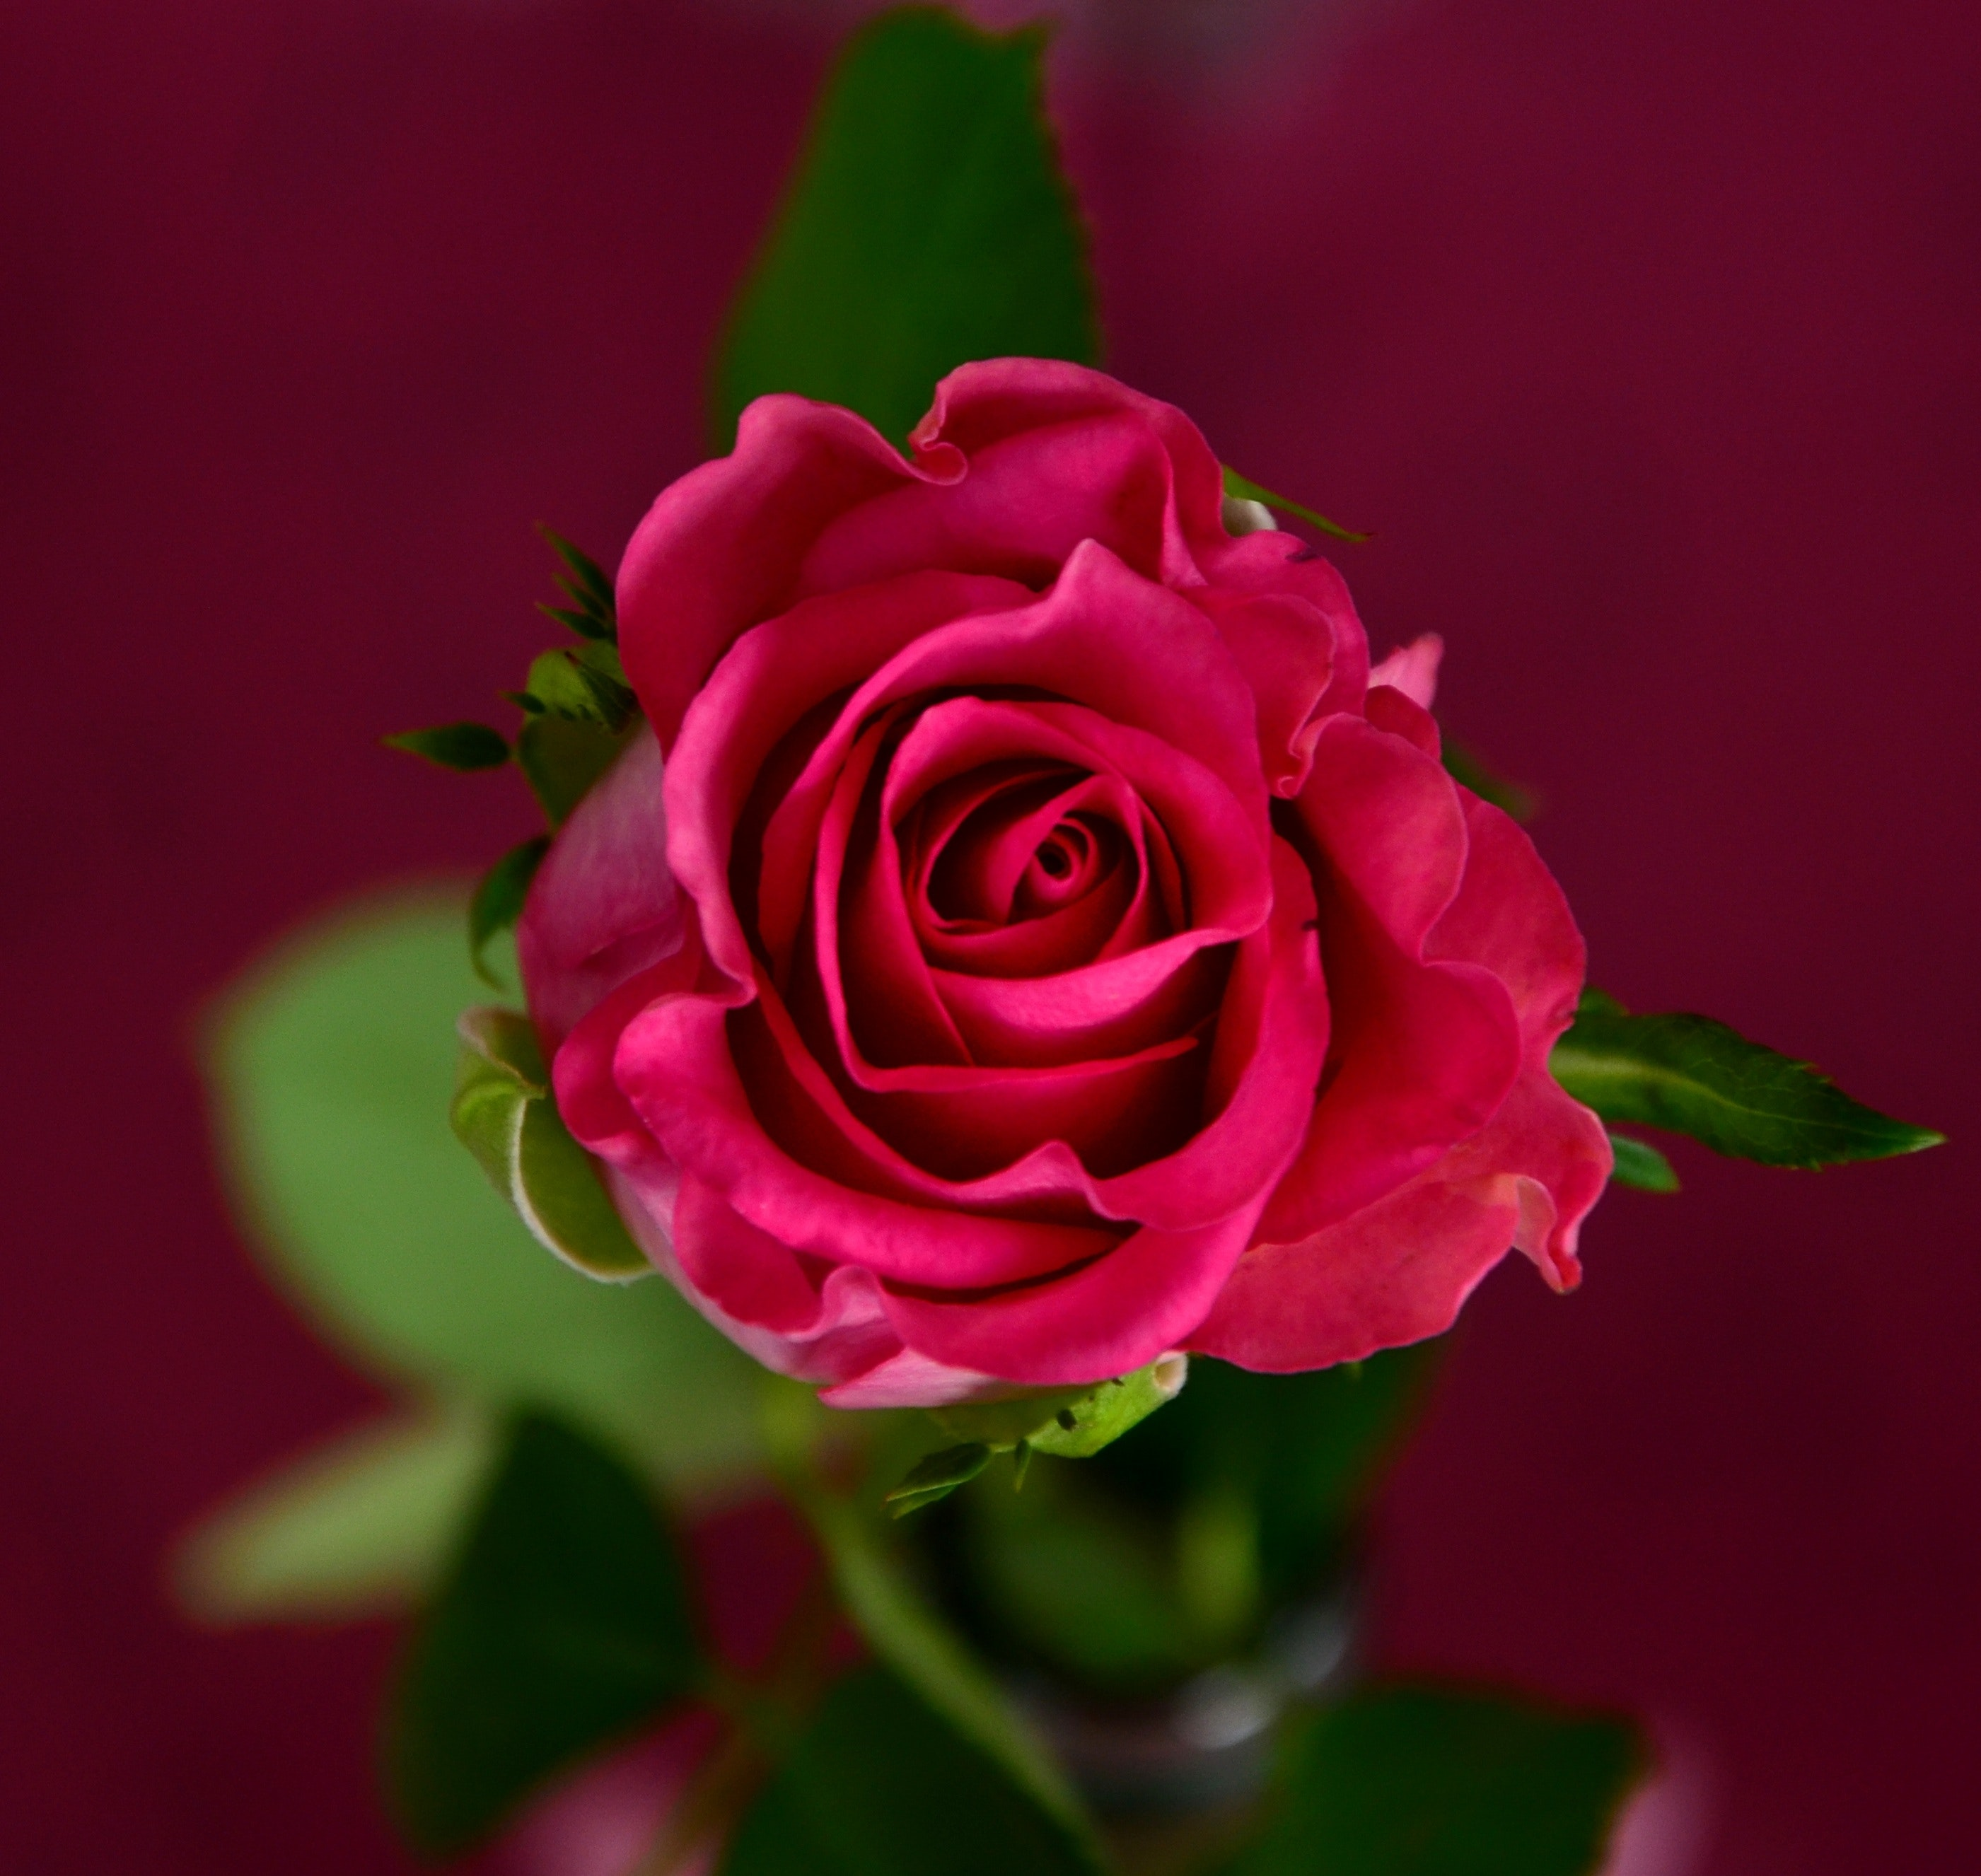 Pink Rose Free Stock Photo